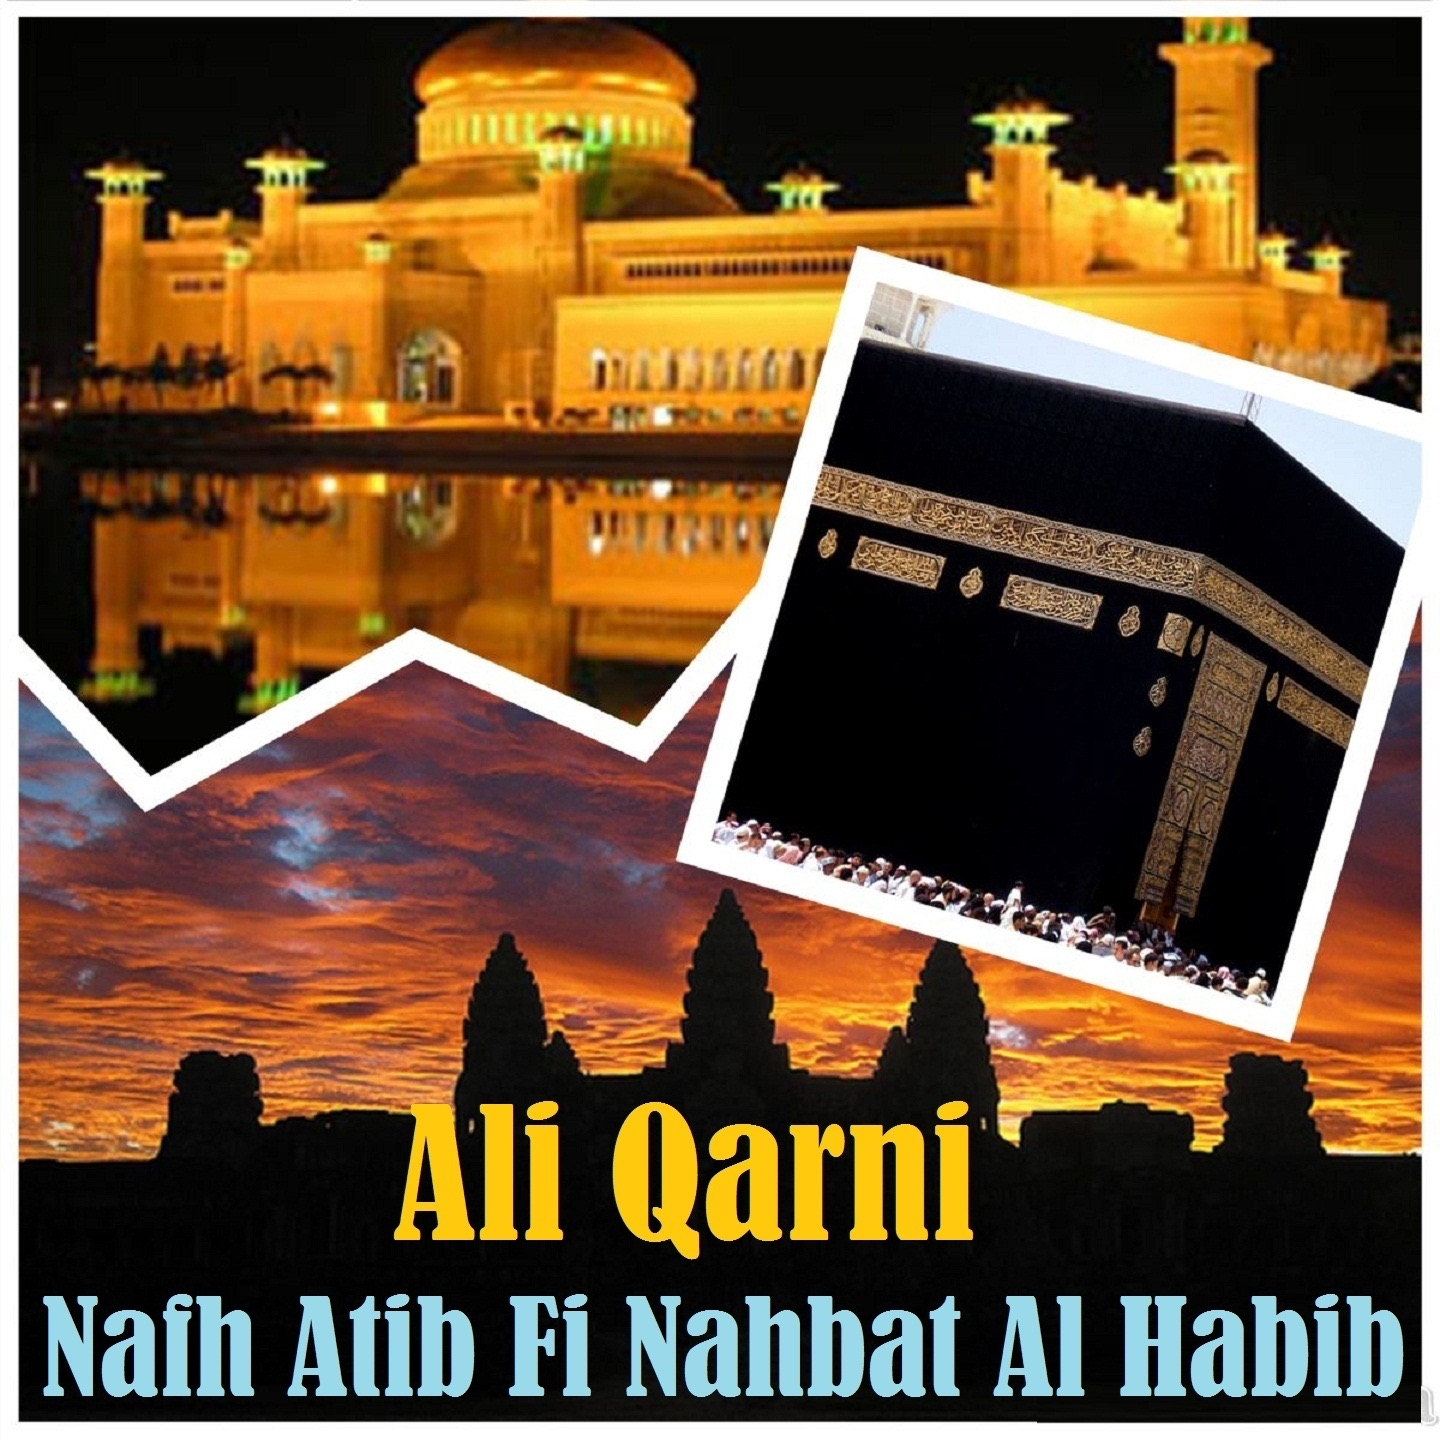 MP3 Songs Online:♫ Nafh Atib Fi Nahbat Al Habib, Pt. 3 - Ali Qarni album Nafh Atib Fi Nahbat Al Habib (Quran). Islamic,Music,Arabic listen to music online free without downloading.